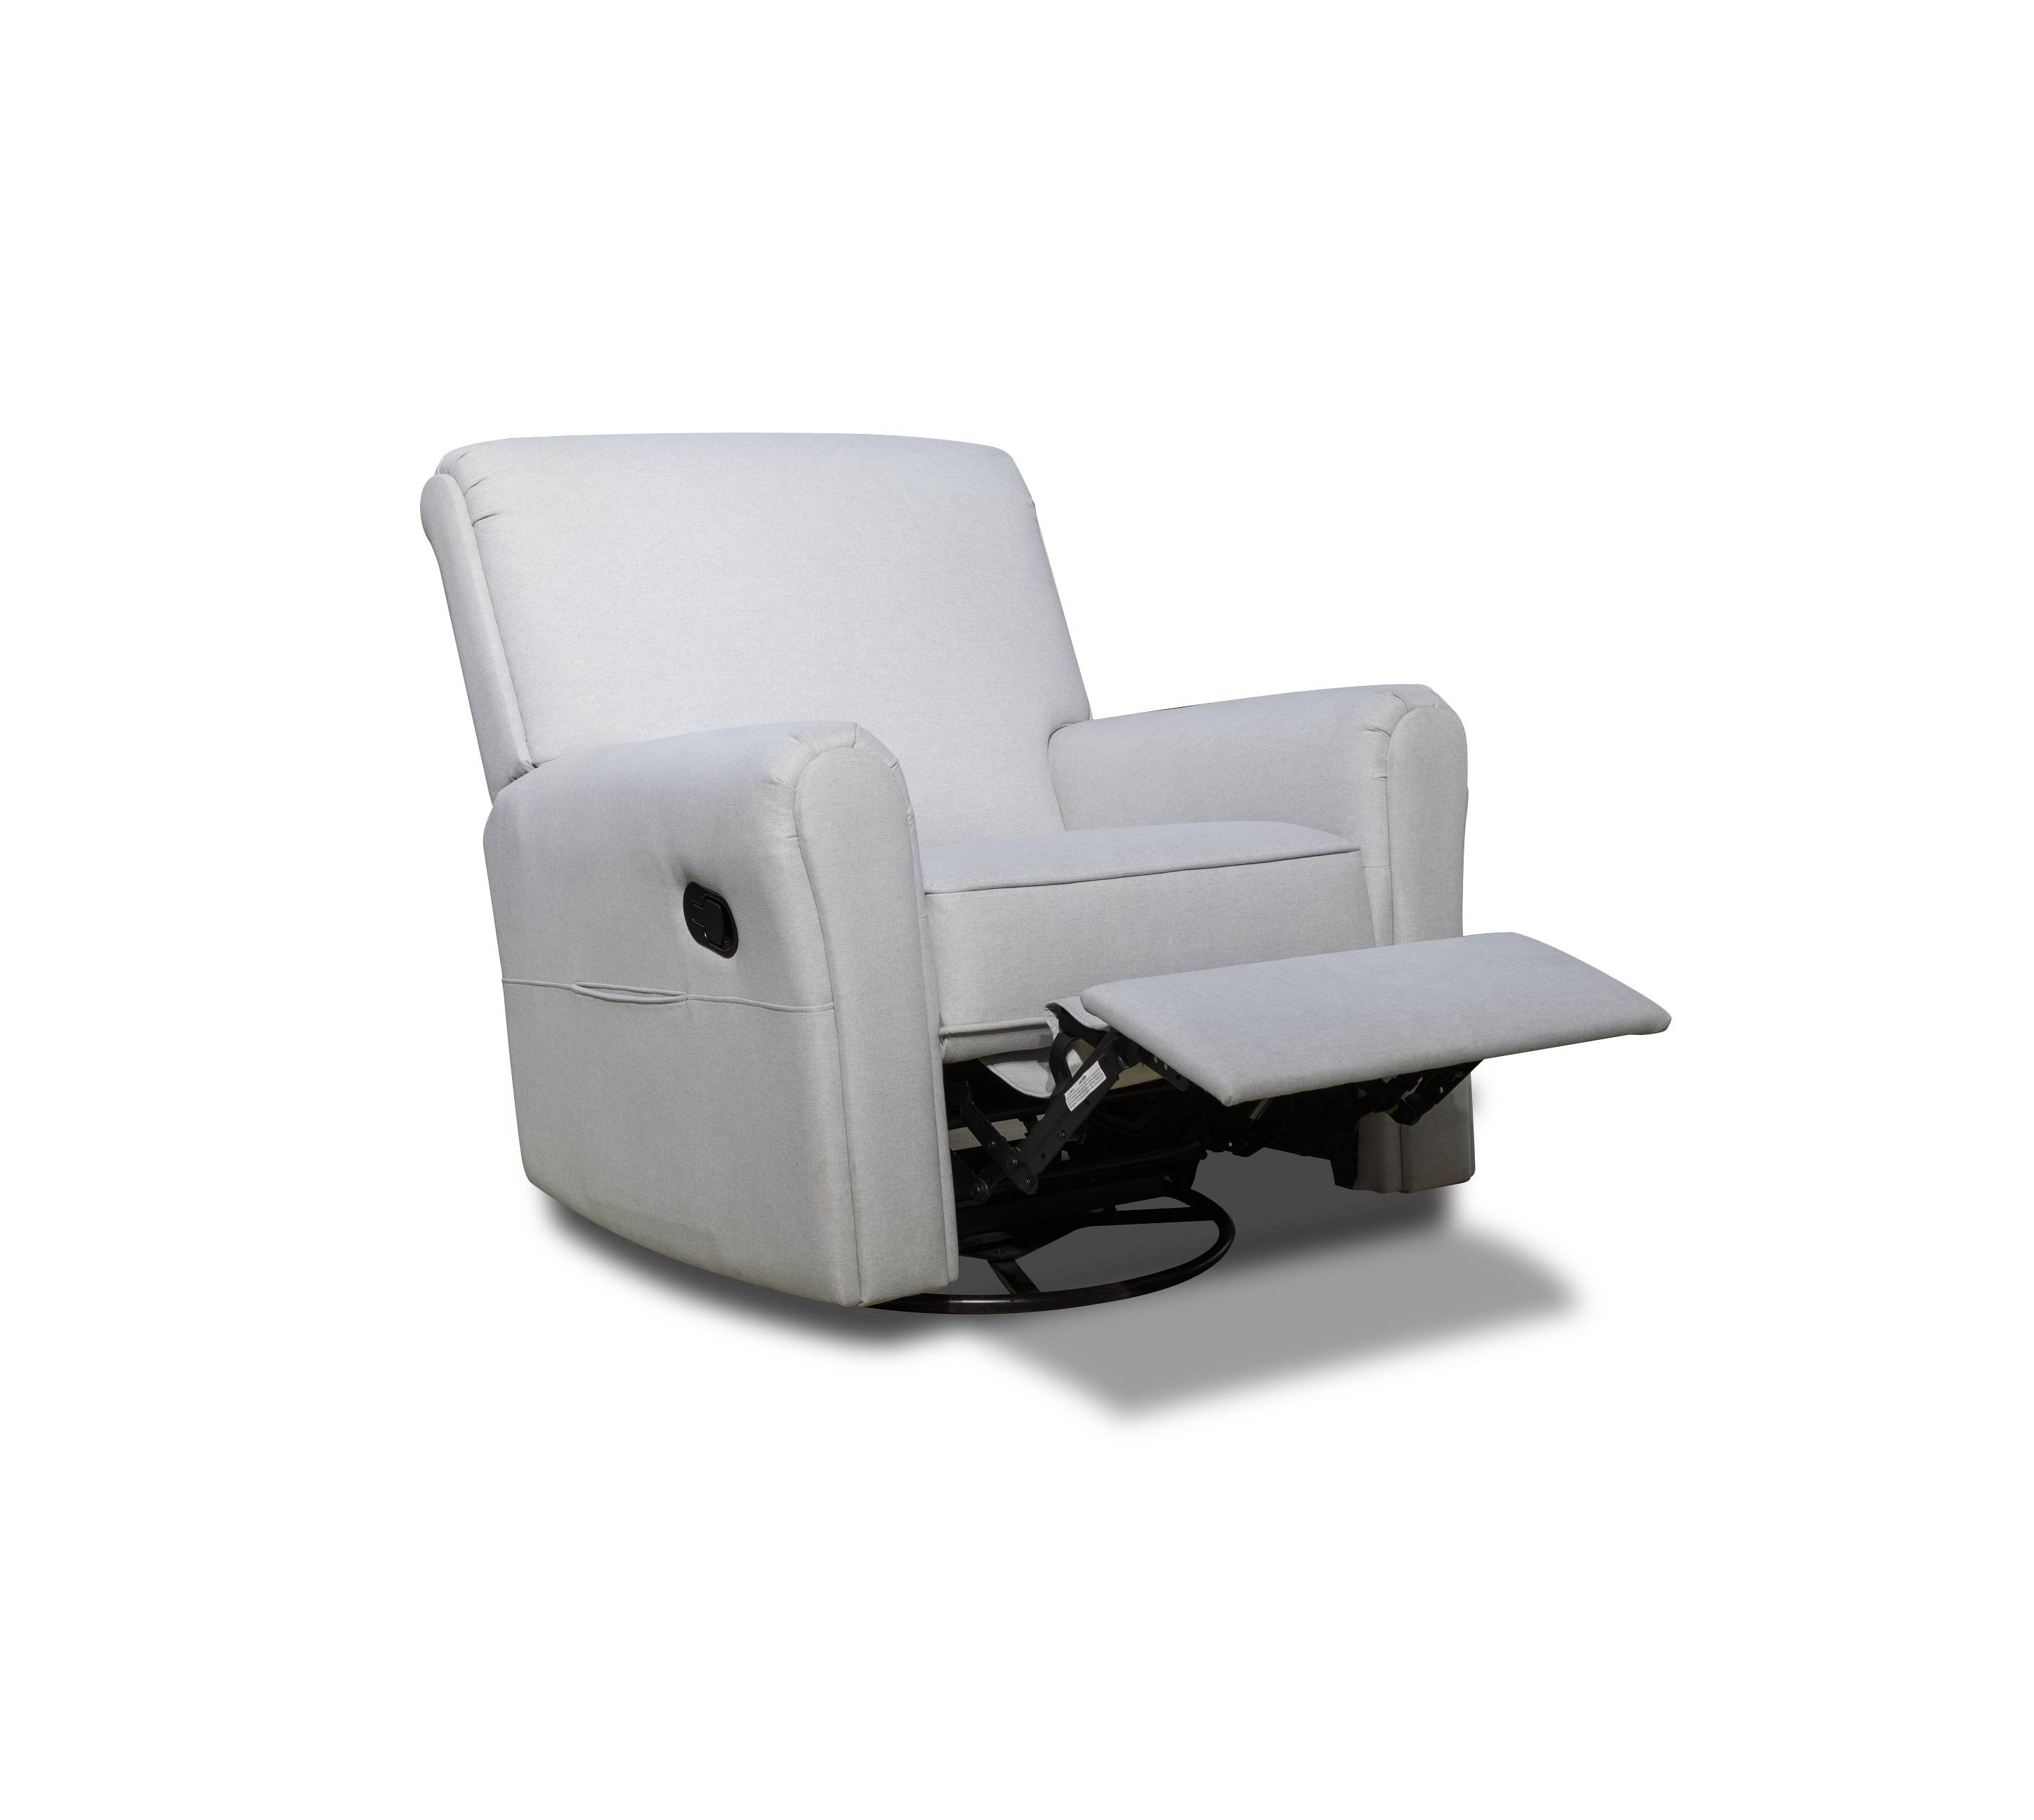 Best quality Multifunction Recliner Massage Sofa -